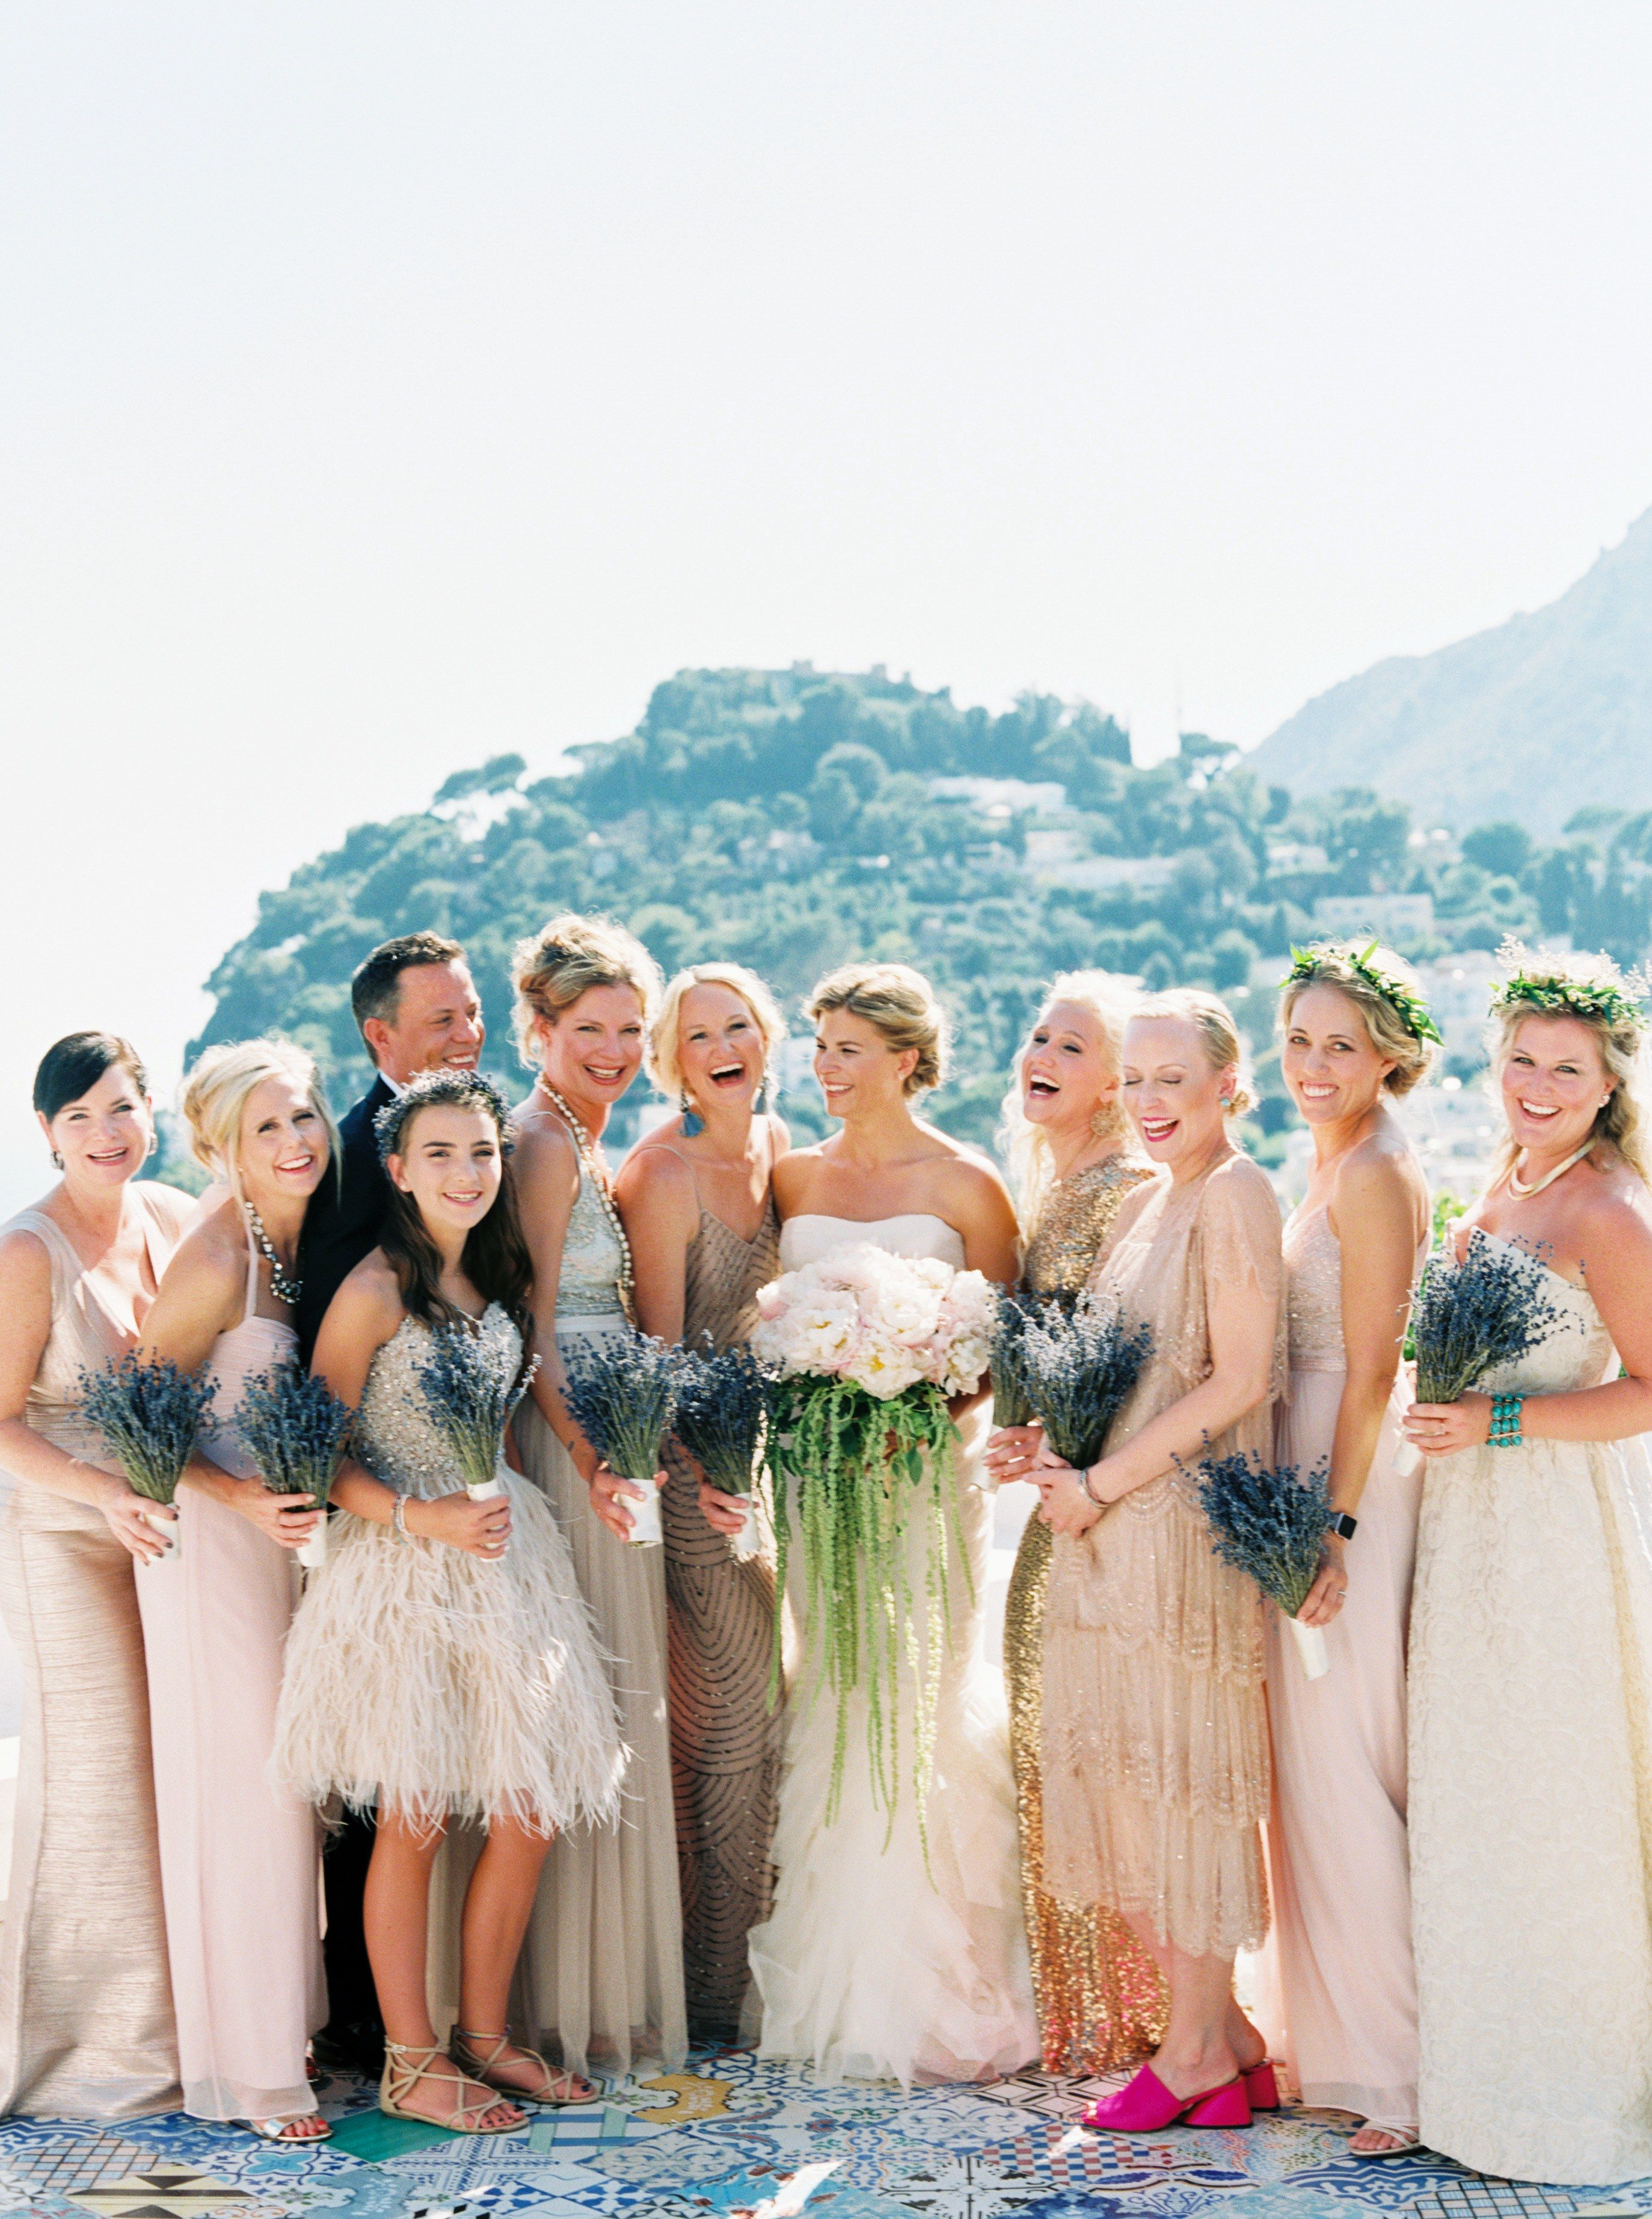 The 3 best places to rent bridesmaid dresses coral wedding these bridesmaid dress rental sites will help keep costs and stress low without ombrellifo Choice Image